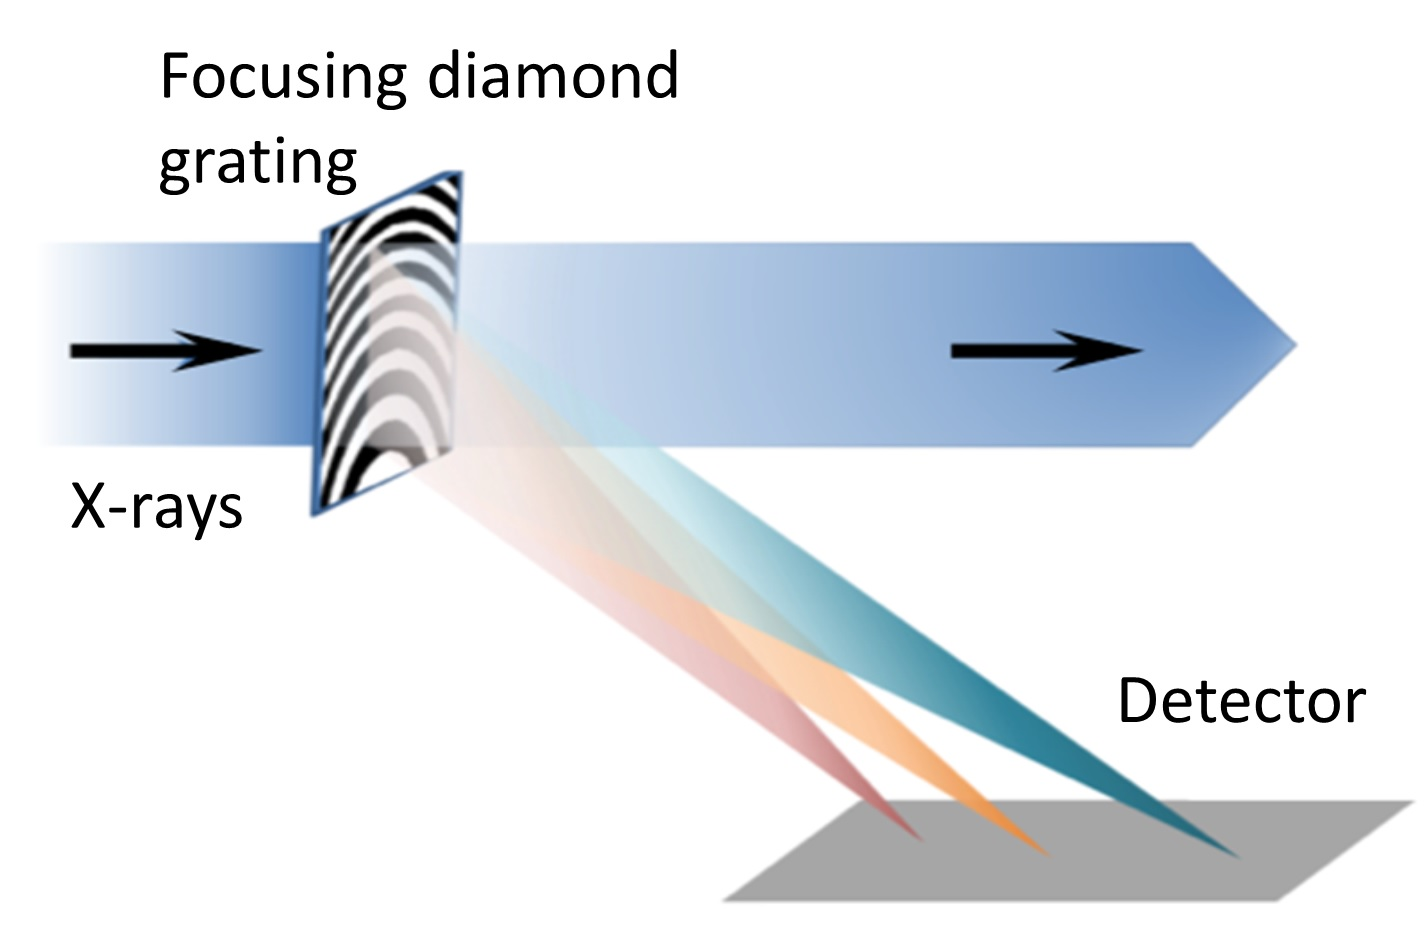 Figure 1: Schematic drawing of the experimental setup using an off-axis Fresnel zone plate. The diamond focusing grating diffracts and focuses a small portion of beam onto a fast-frame camera for spectral monitoring purposes.